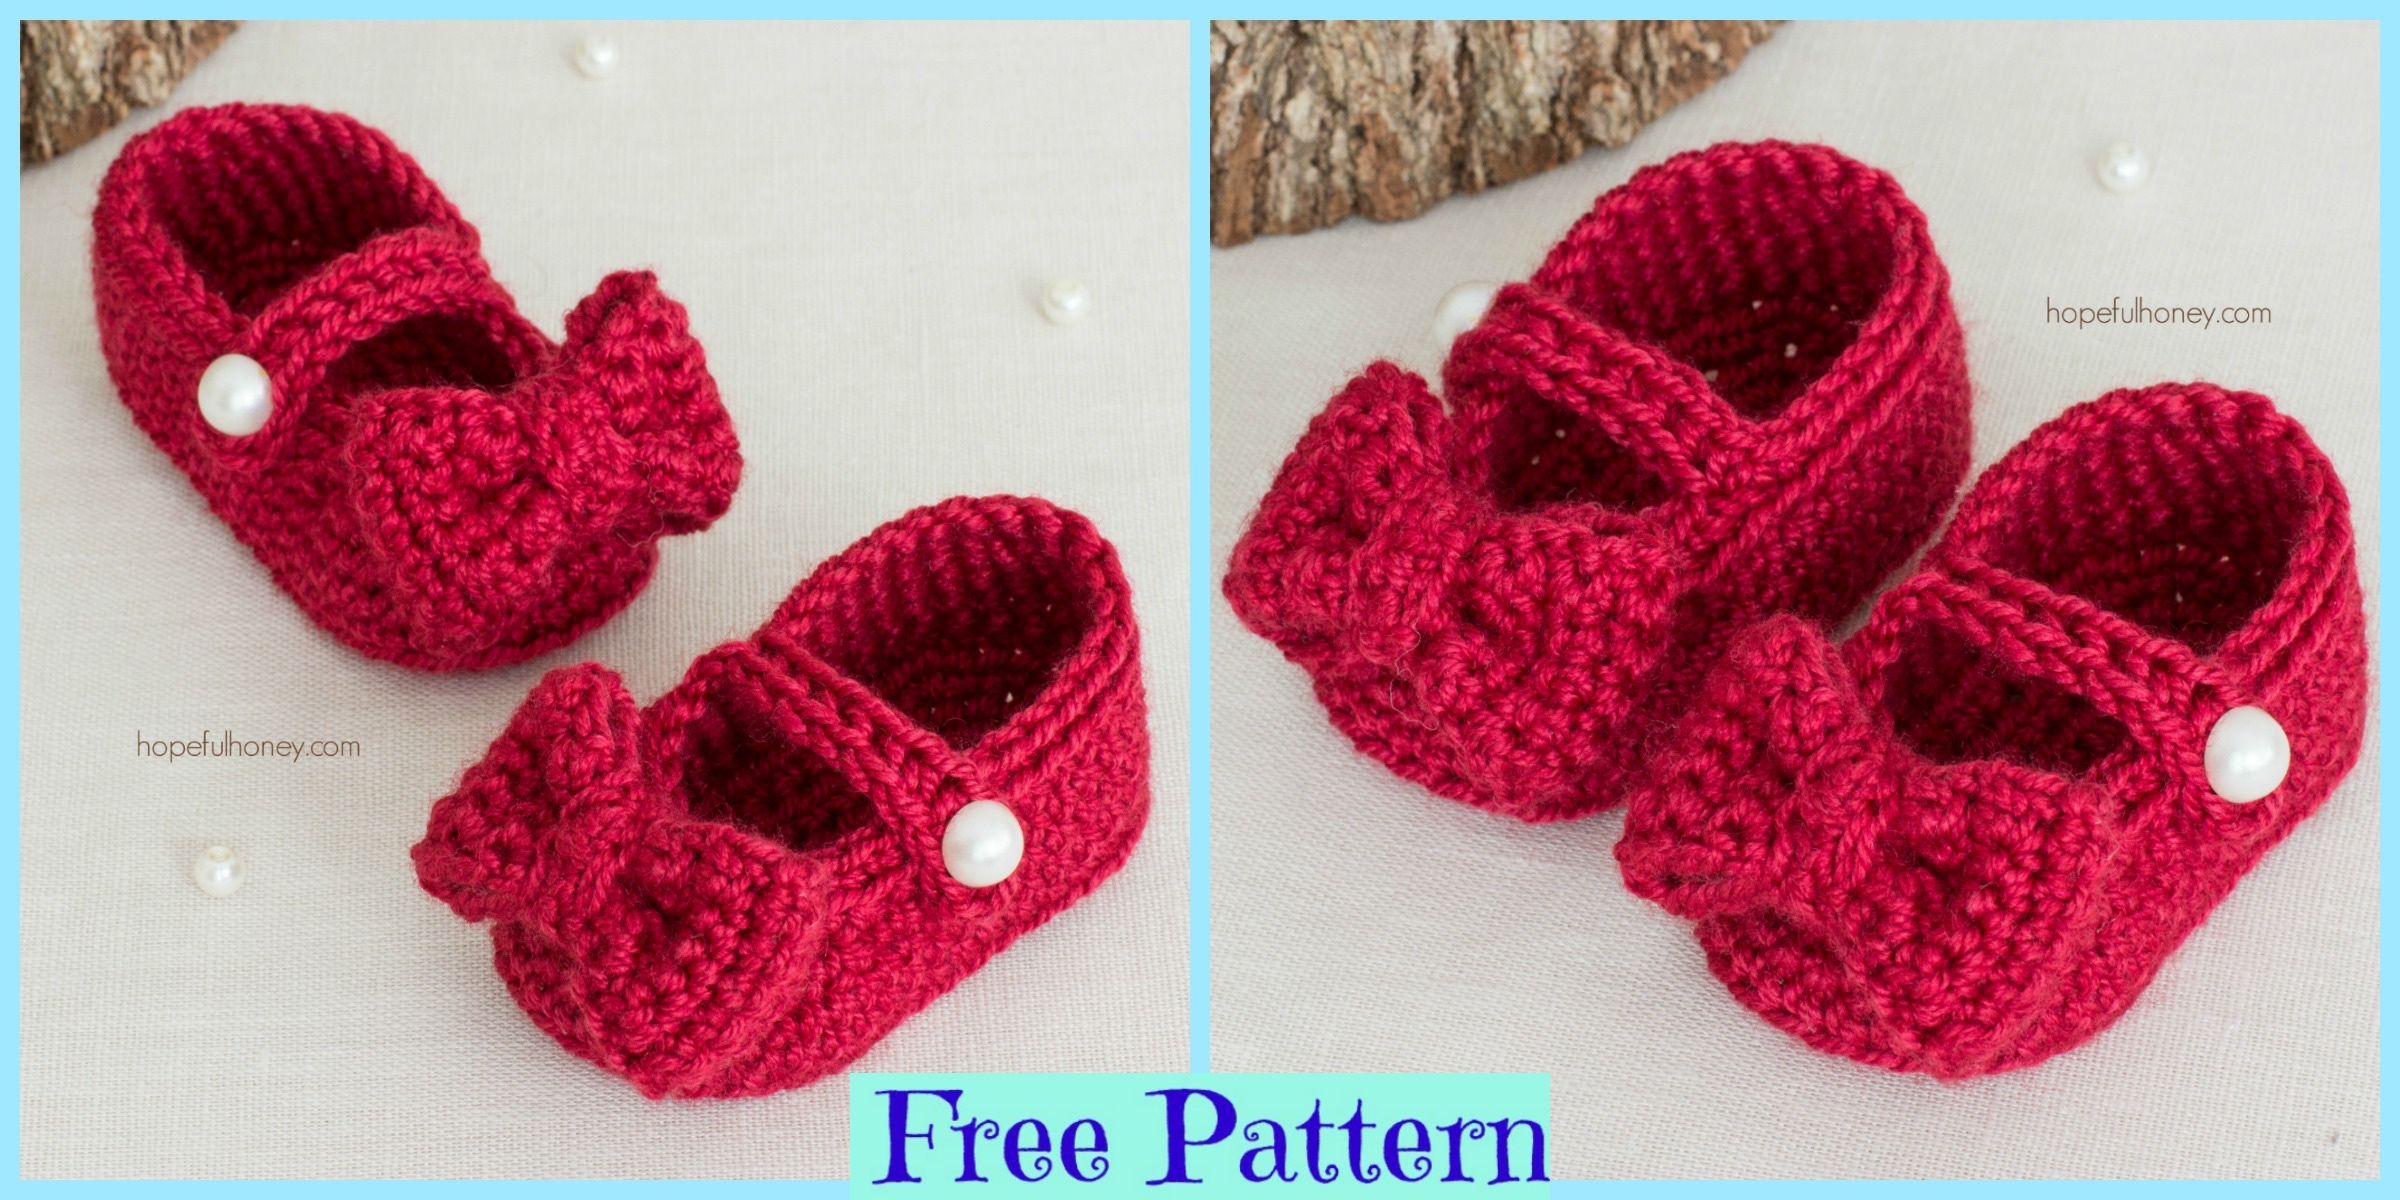 Red Crochet Mary Jane Booties – Free Pattern